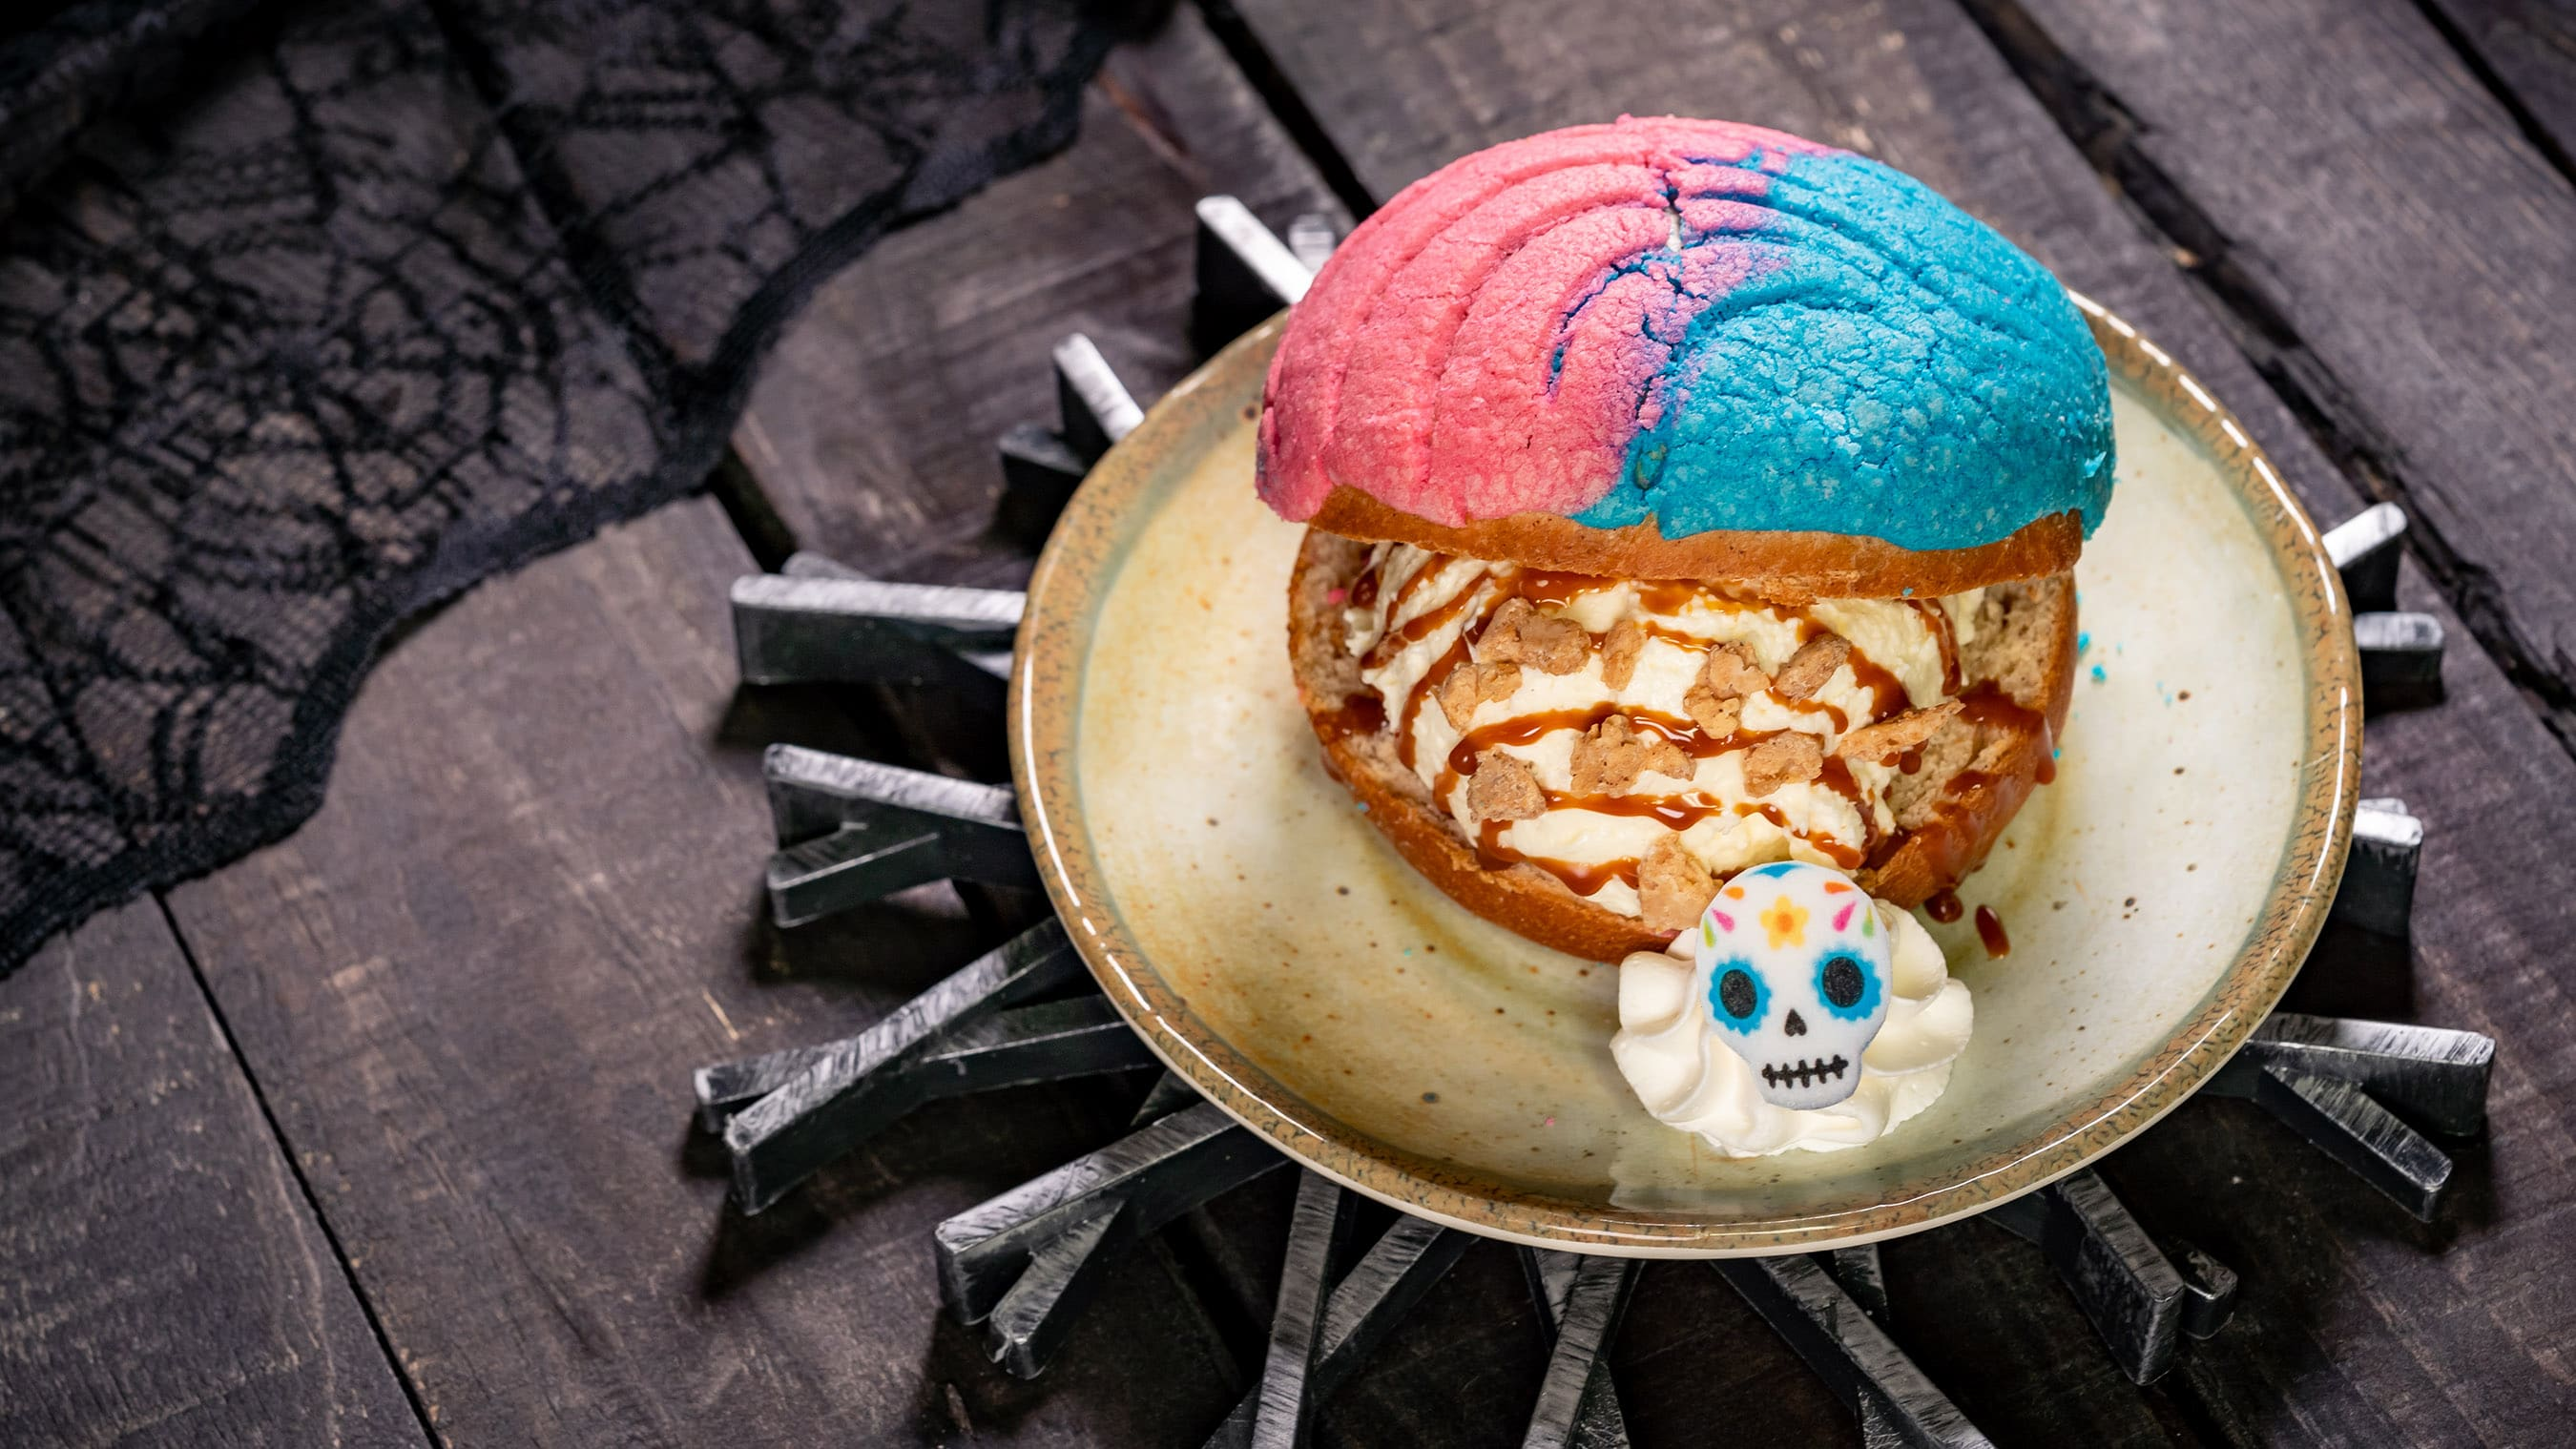 Pan Dulce Ice Cream sandwich on a place with a dollop of cream topped with a candy skull.